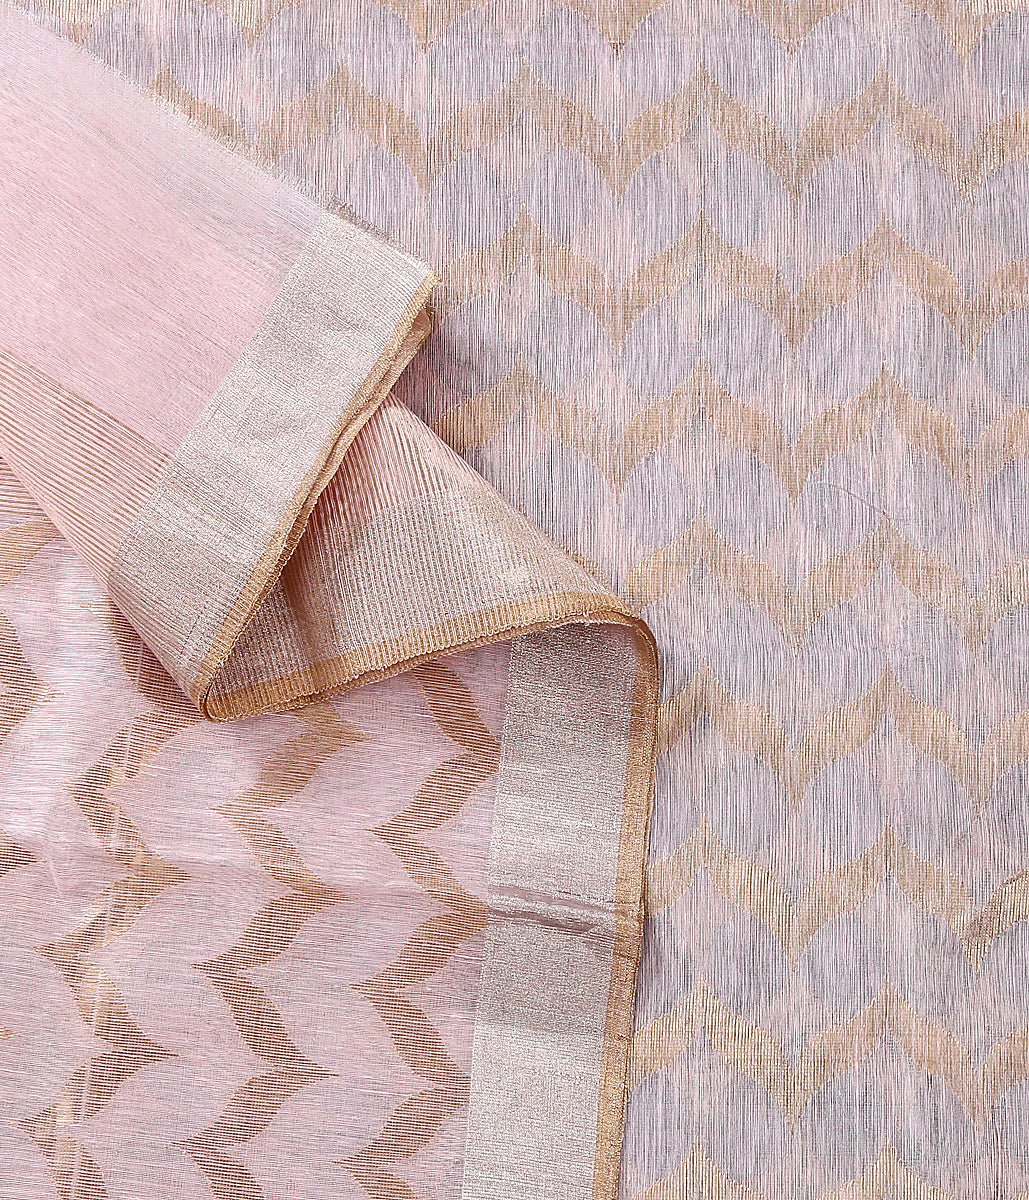 Handwoven Pink chanderi silk dupatta woven with rich gold zari